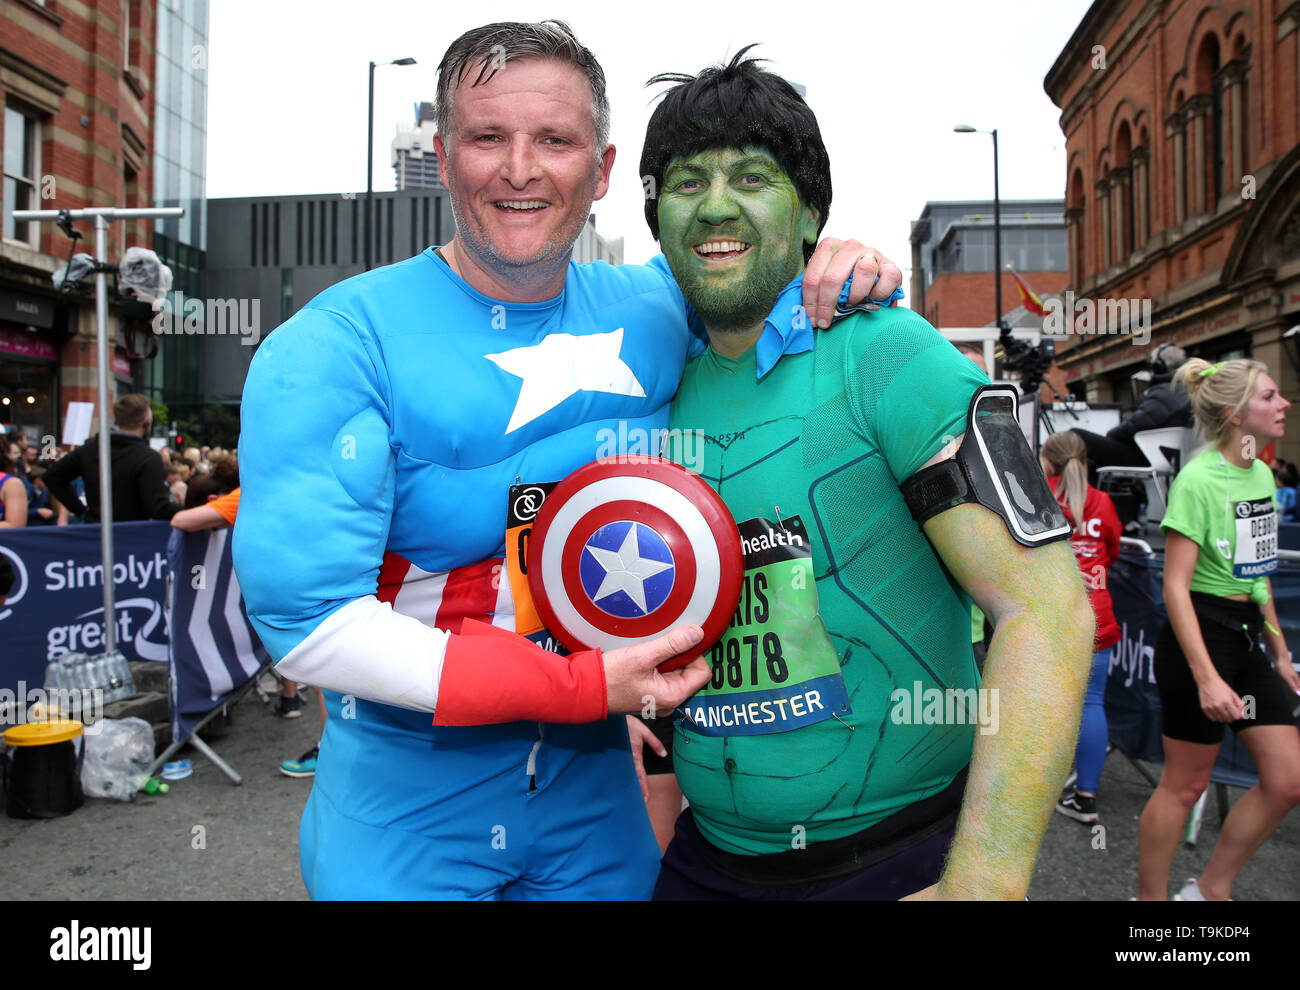 Runners in fancy dress after completing the Simply Health Manchester Run. - Stock Image